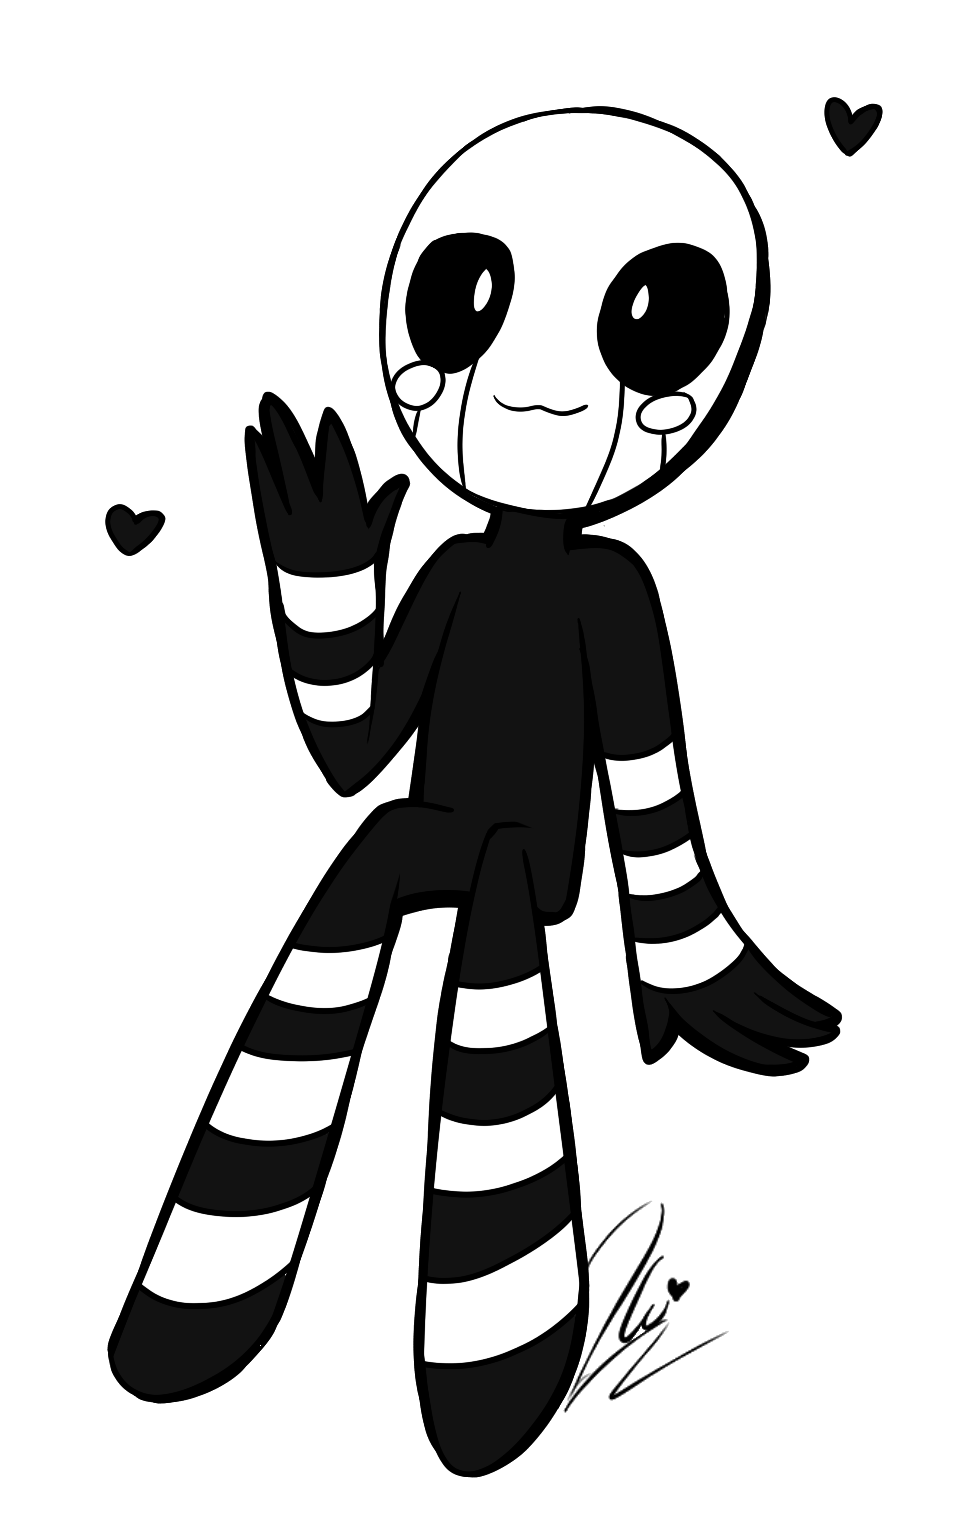 picture transparent Fnaf by darknessdonnie deviantart. Marionette drawing